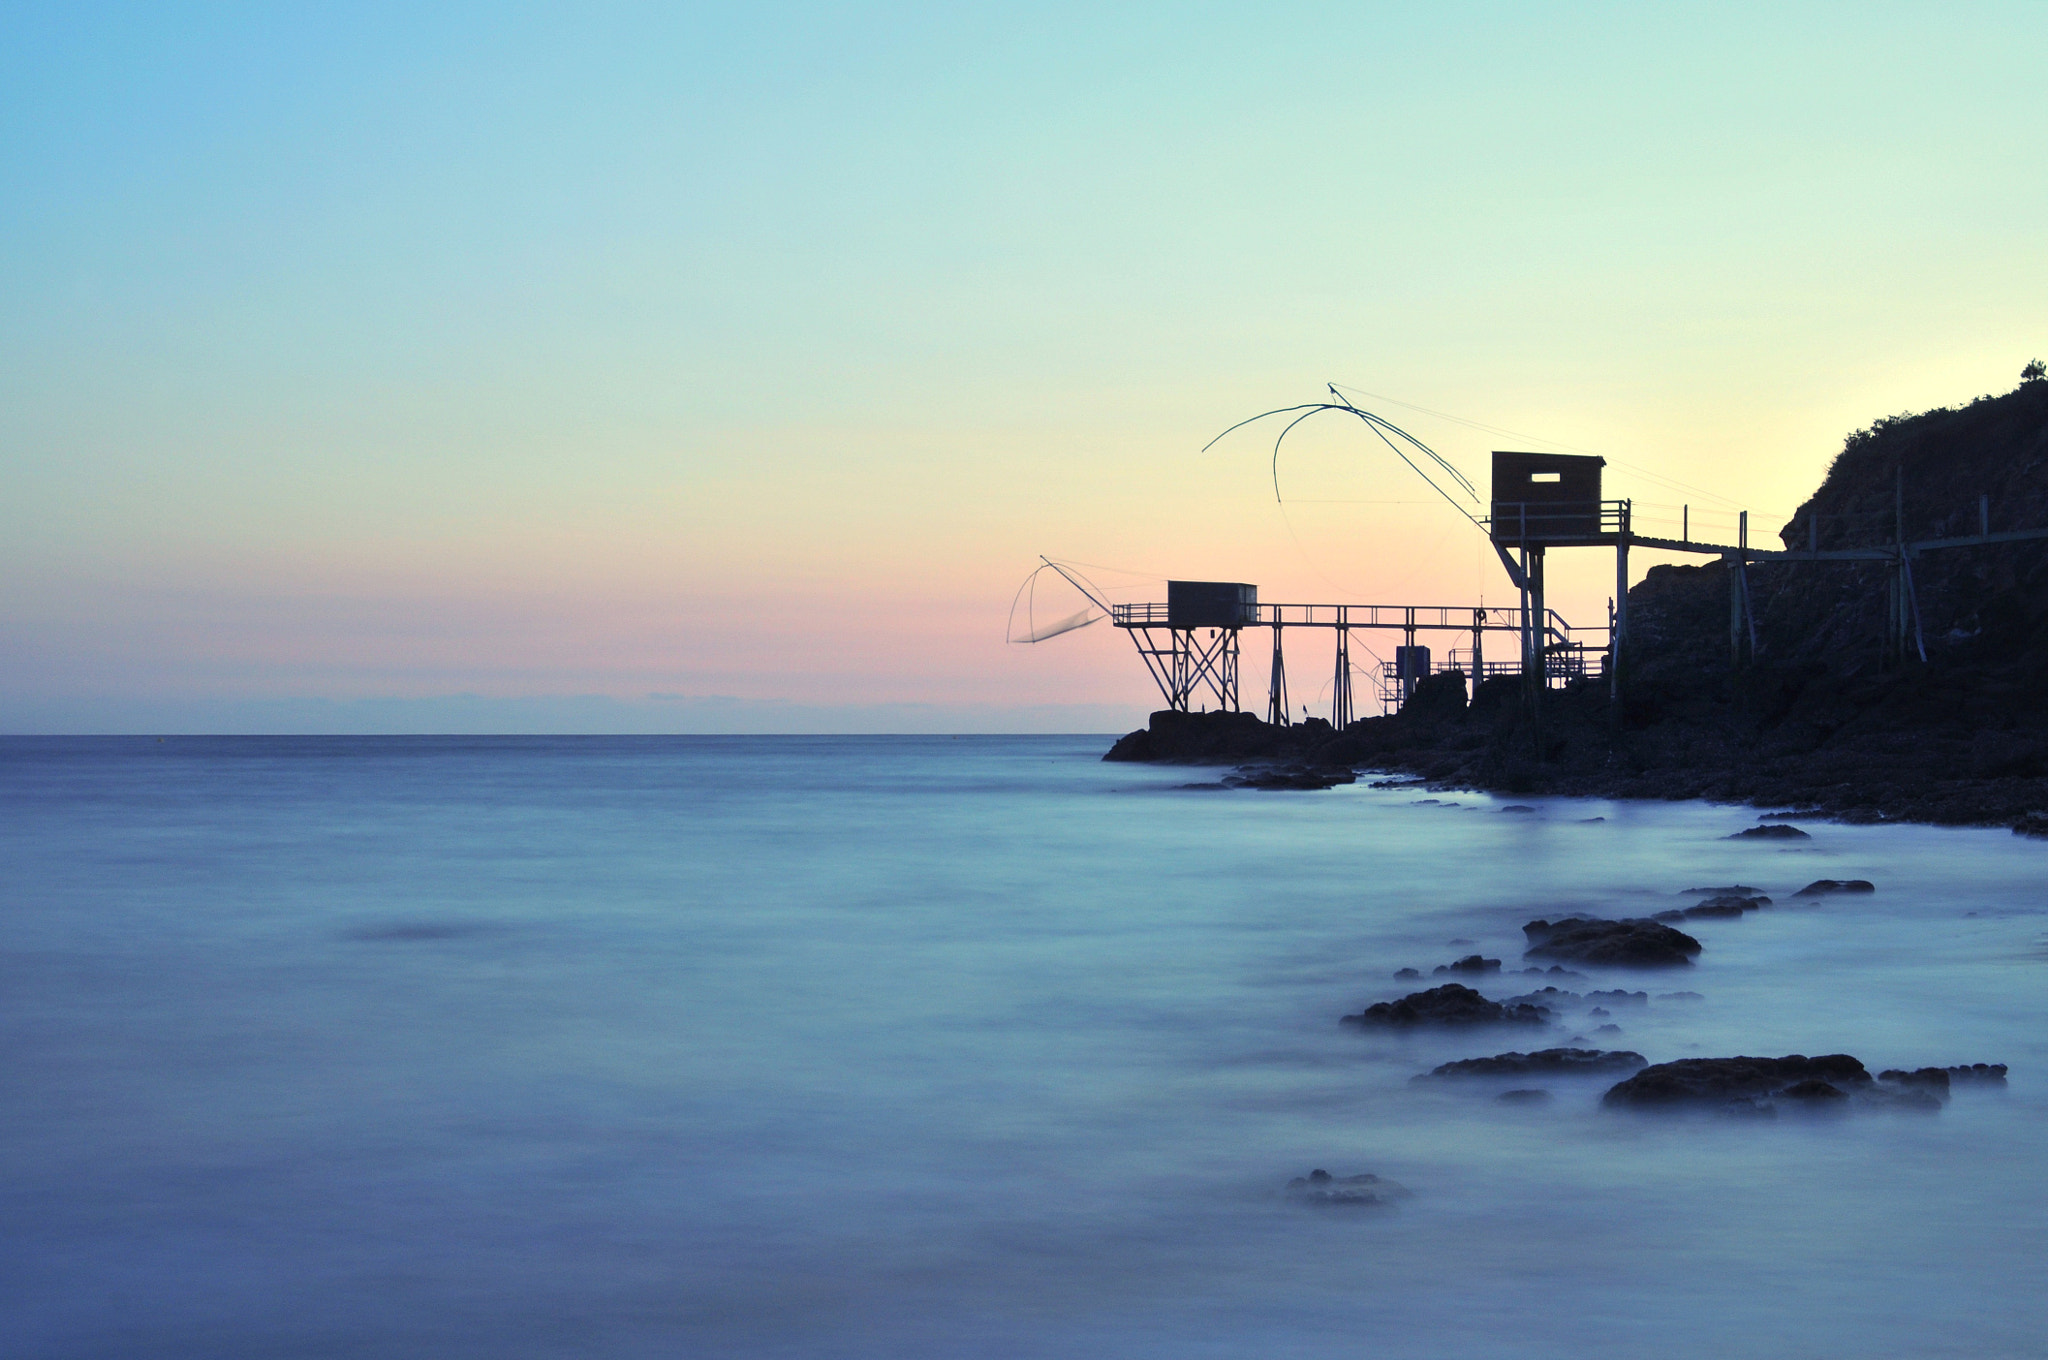 Photograph Cabanes pêcheurs aux carrelets Pornic by Thierry Perrier on 500px